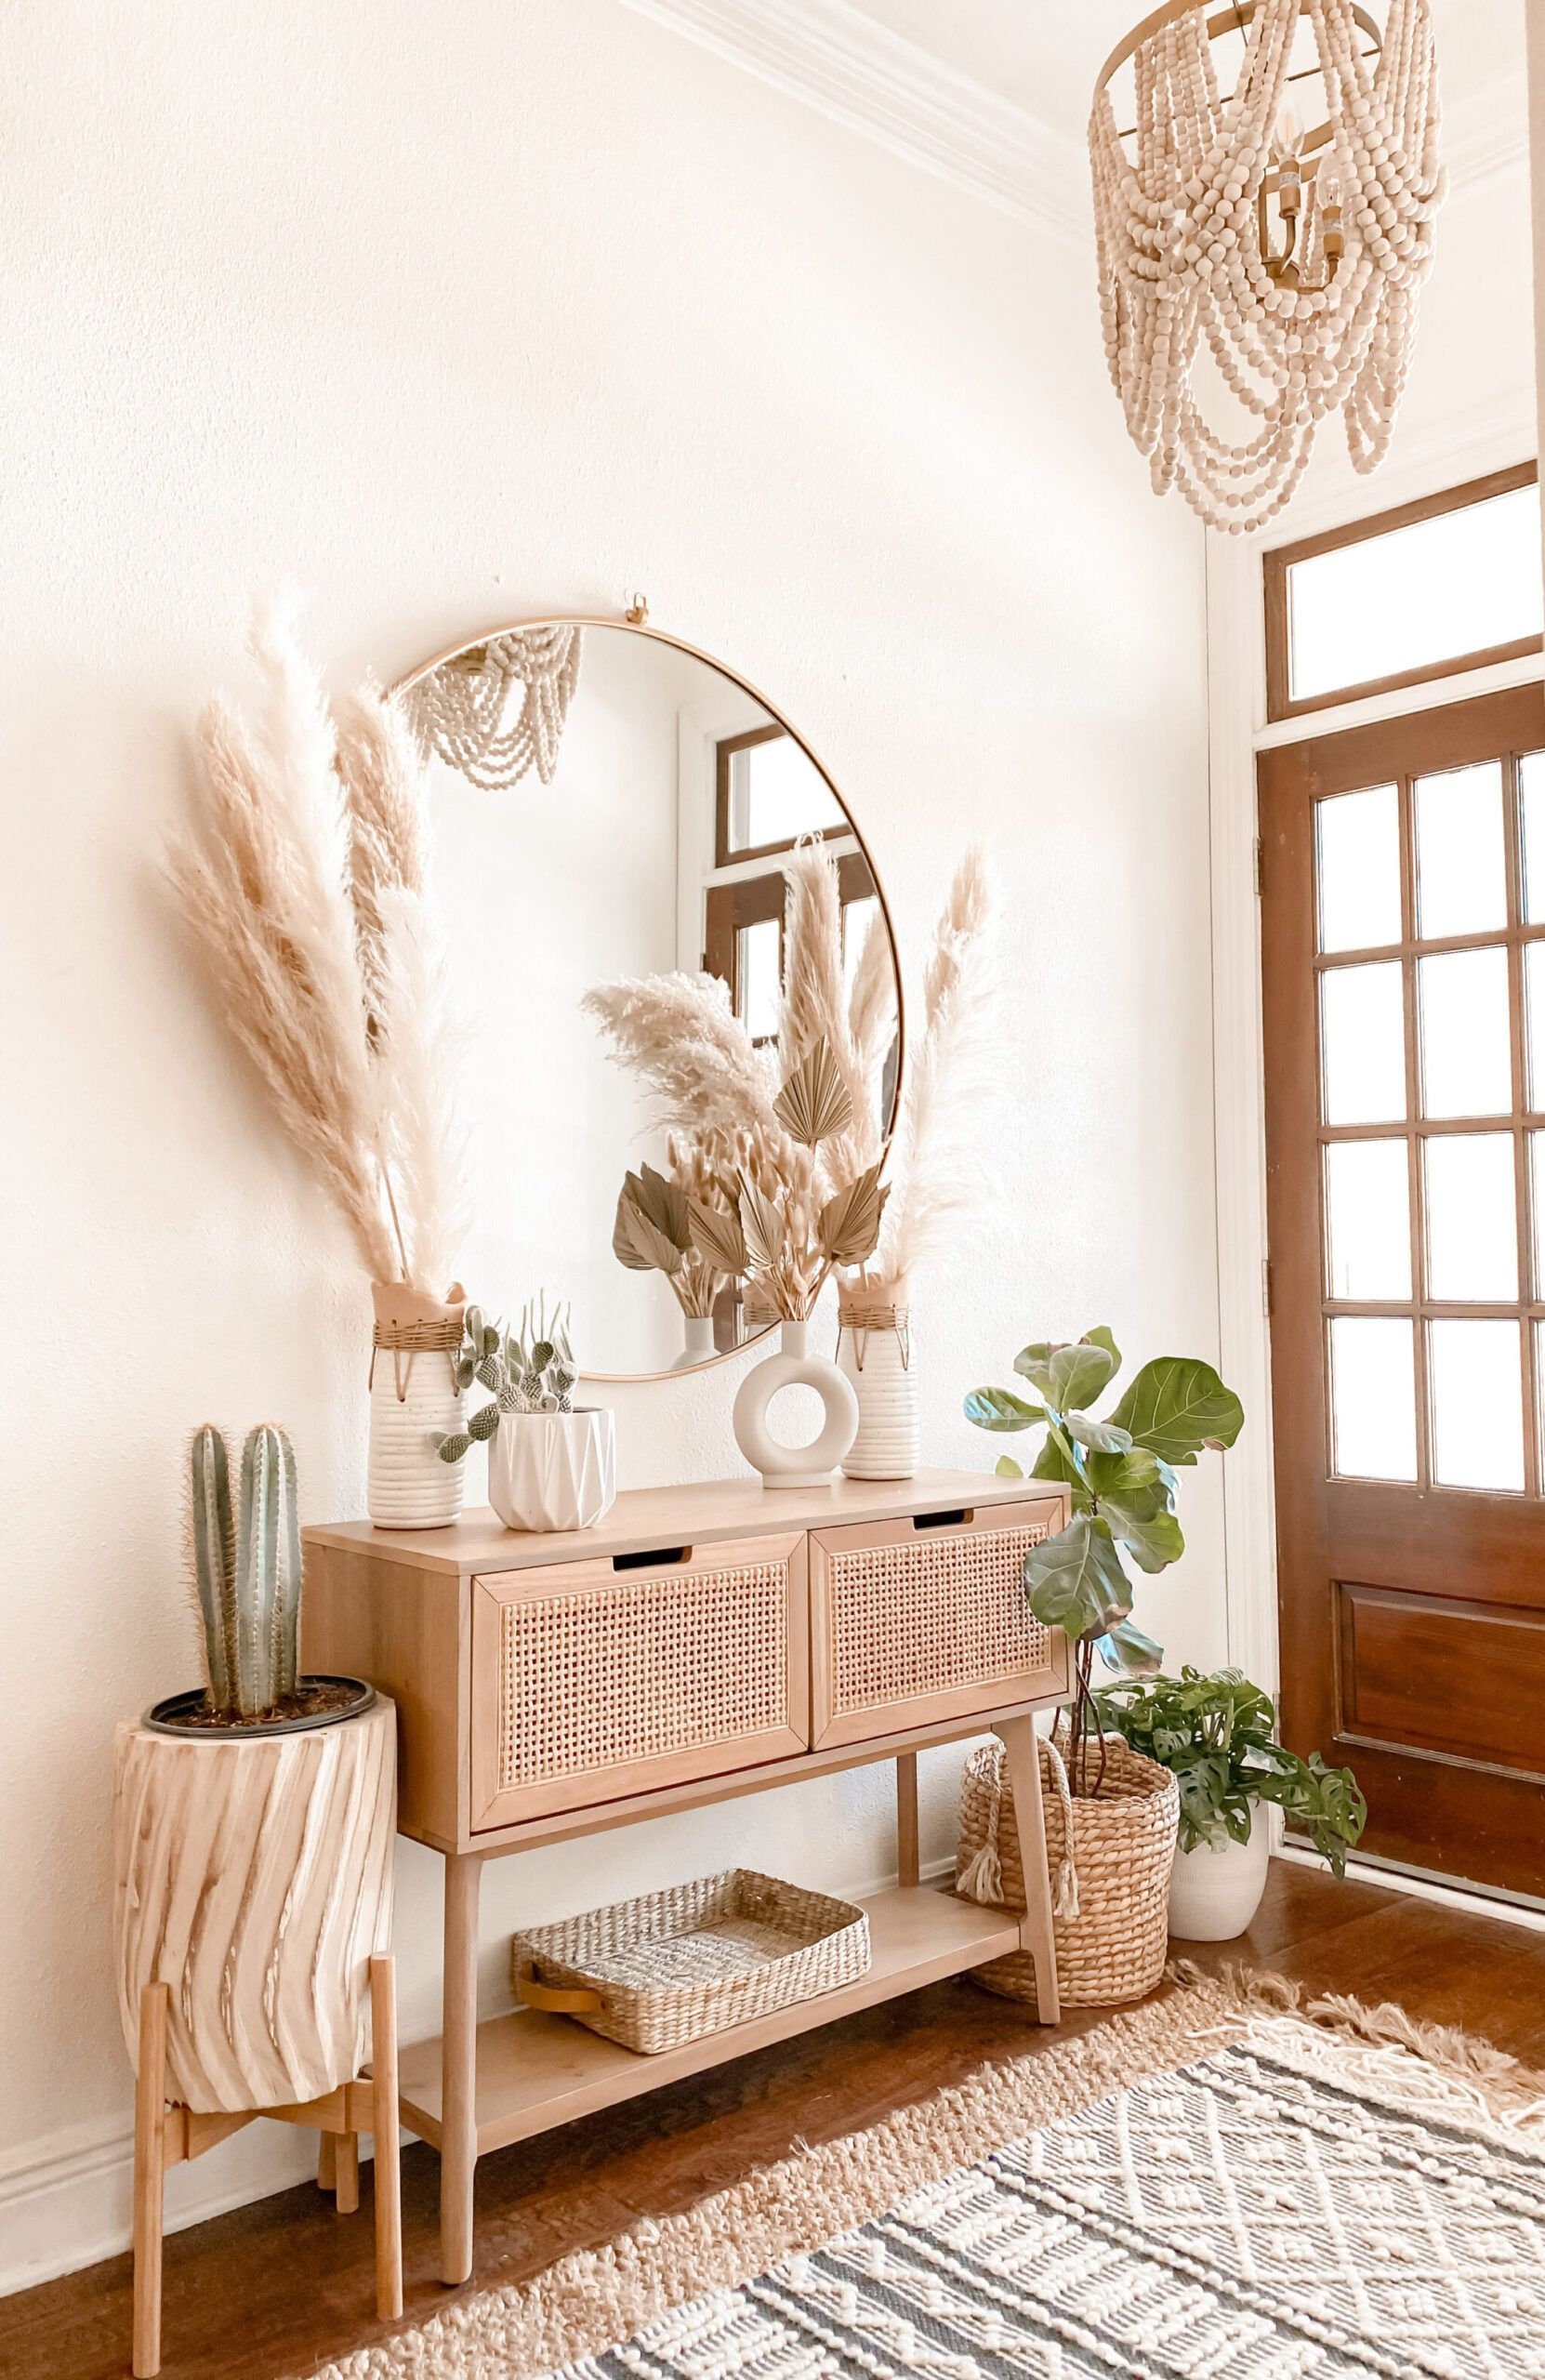 DECORATING WITH RATTAN & CANE